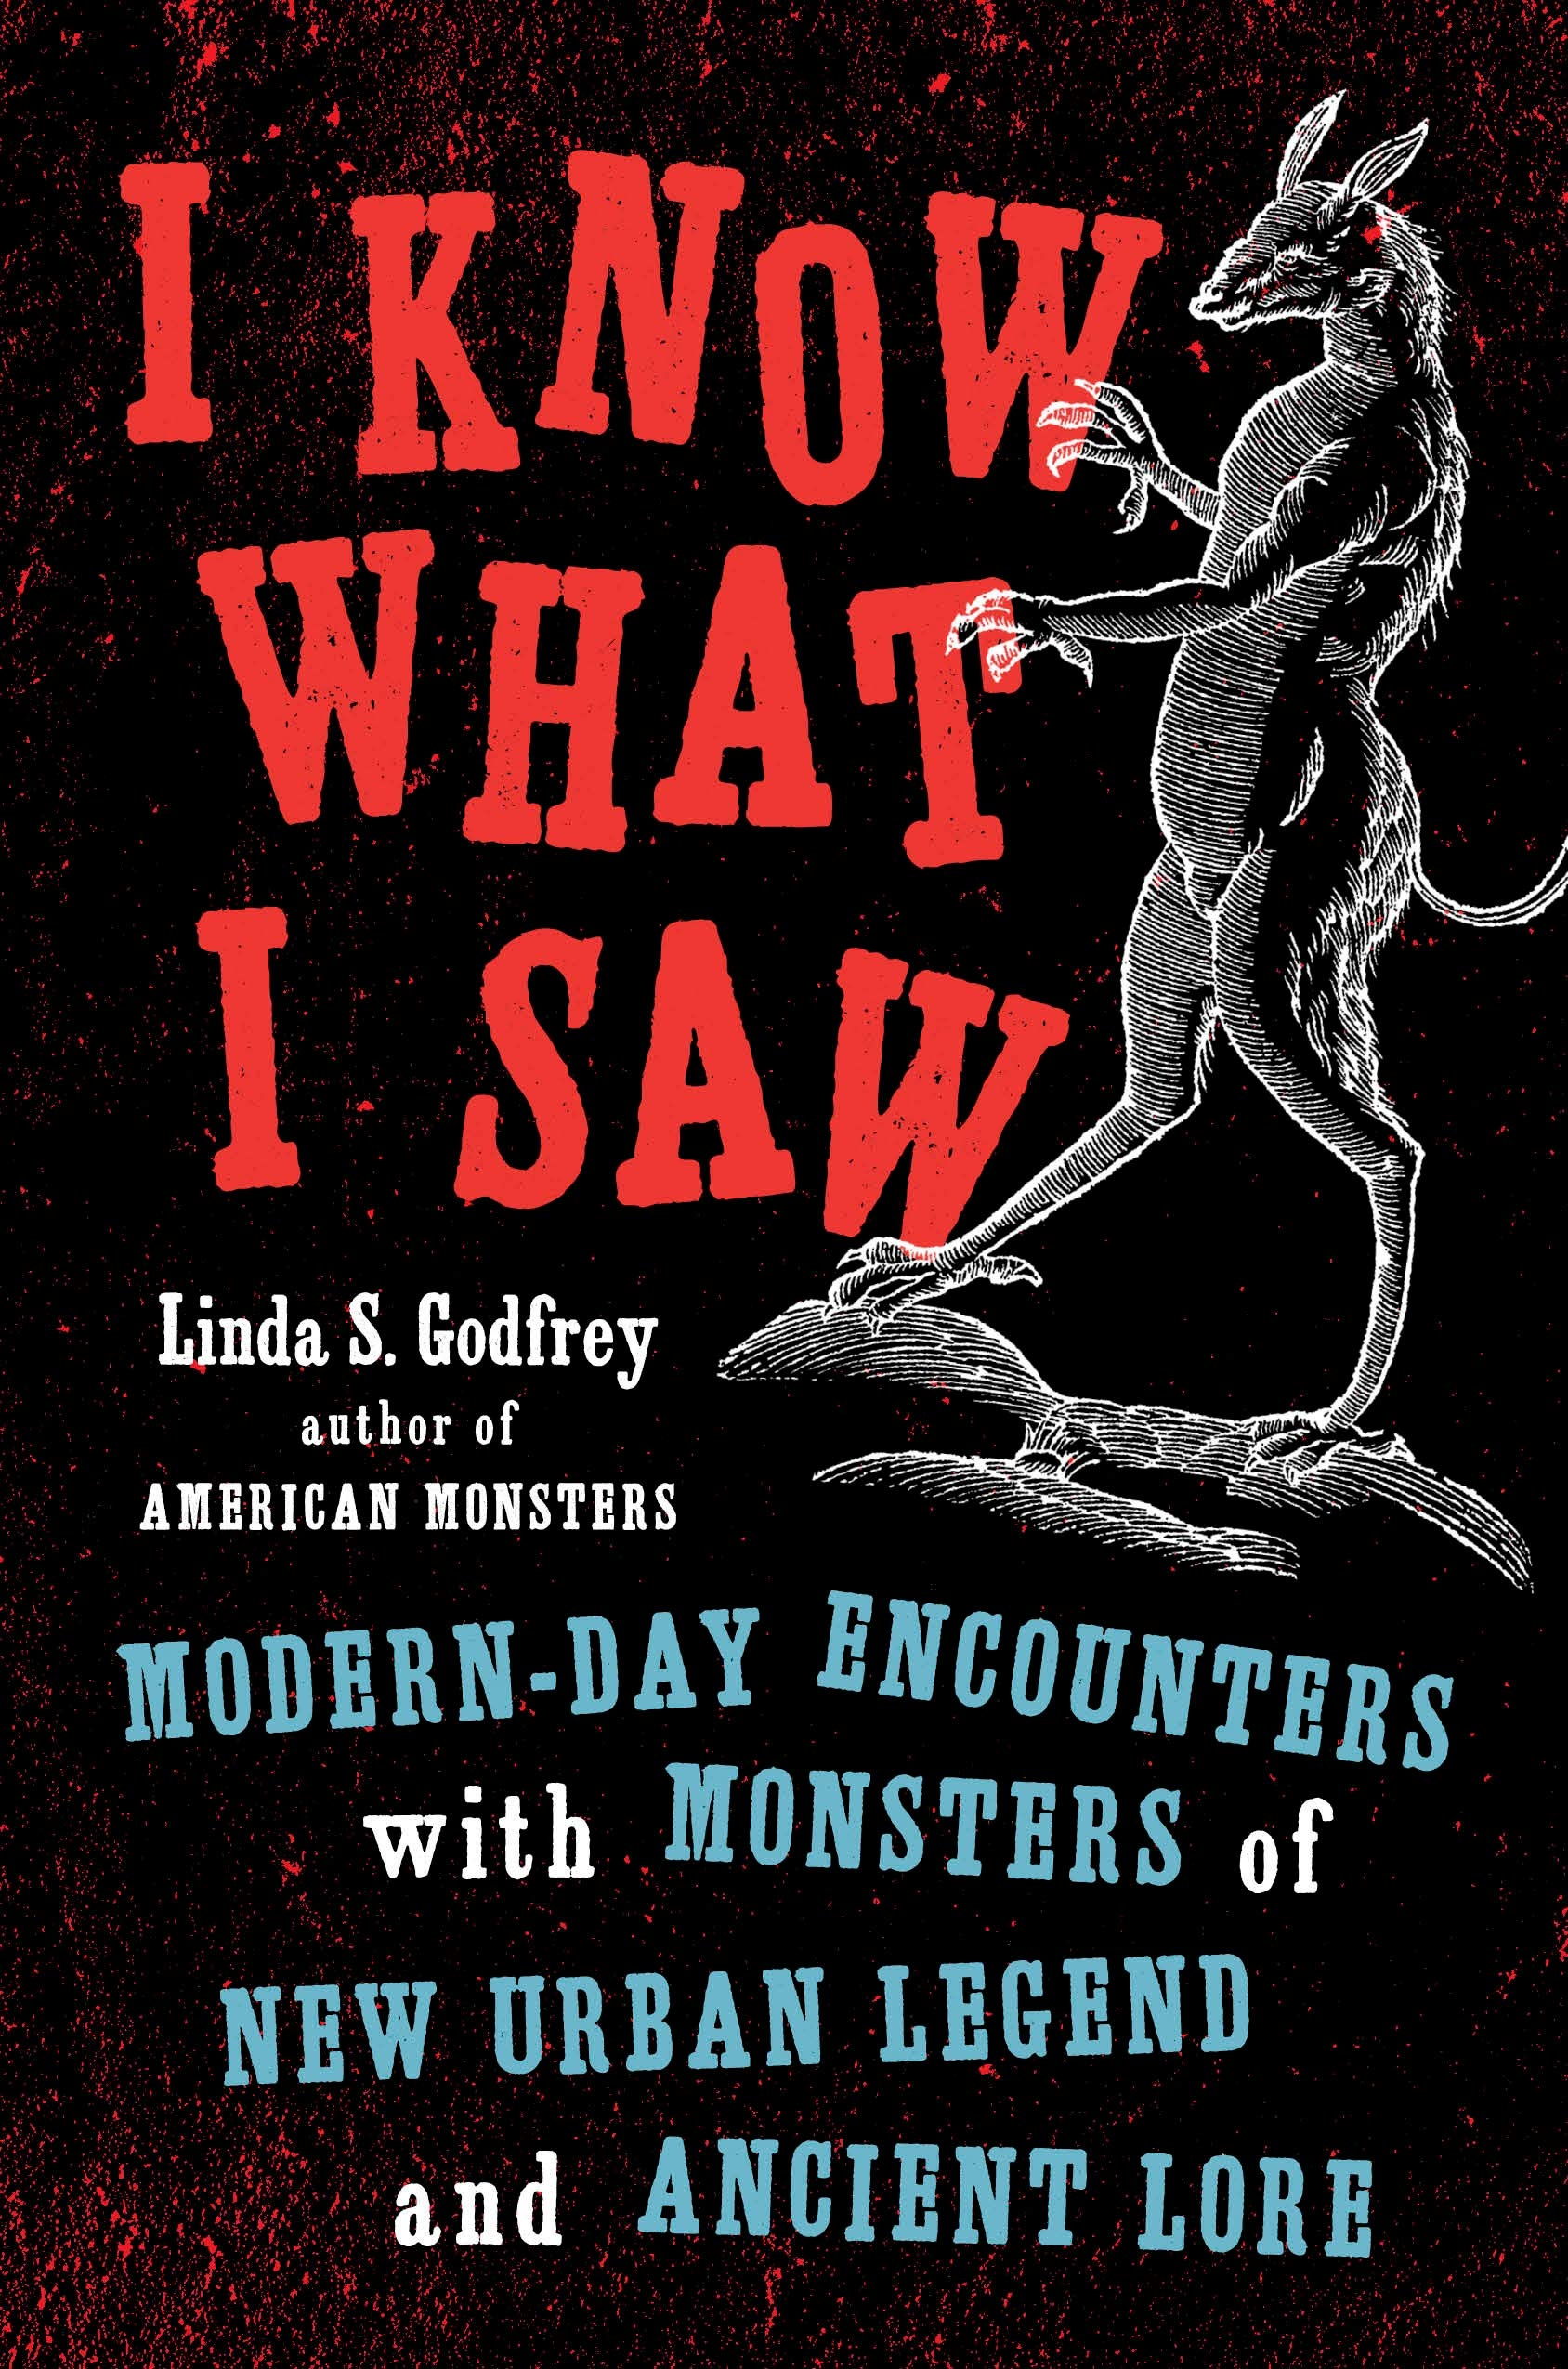 I Know What I Saw: Modern-Day Encounters with Monsters of New Urban Legend and Ancient Lore By Linda S. Godfrey Tarcher Perigee, 2019